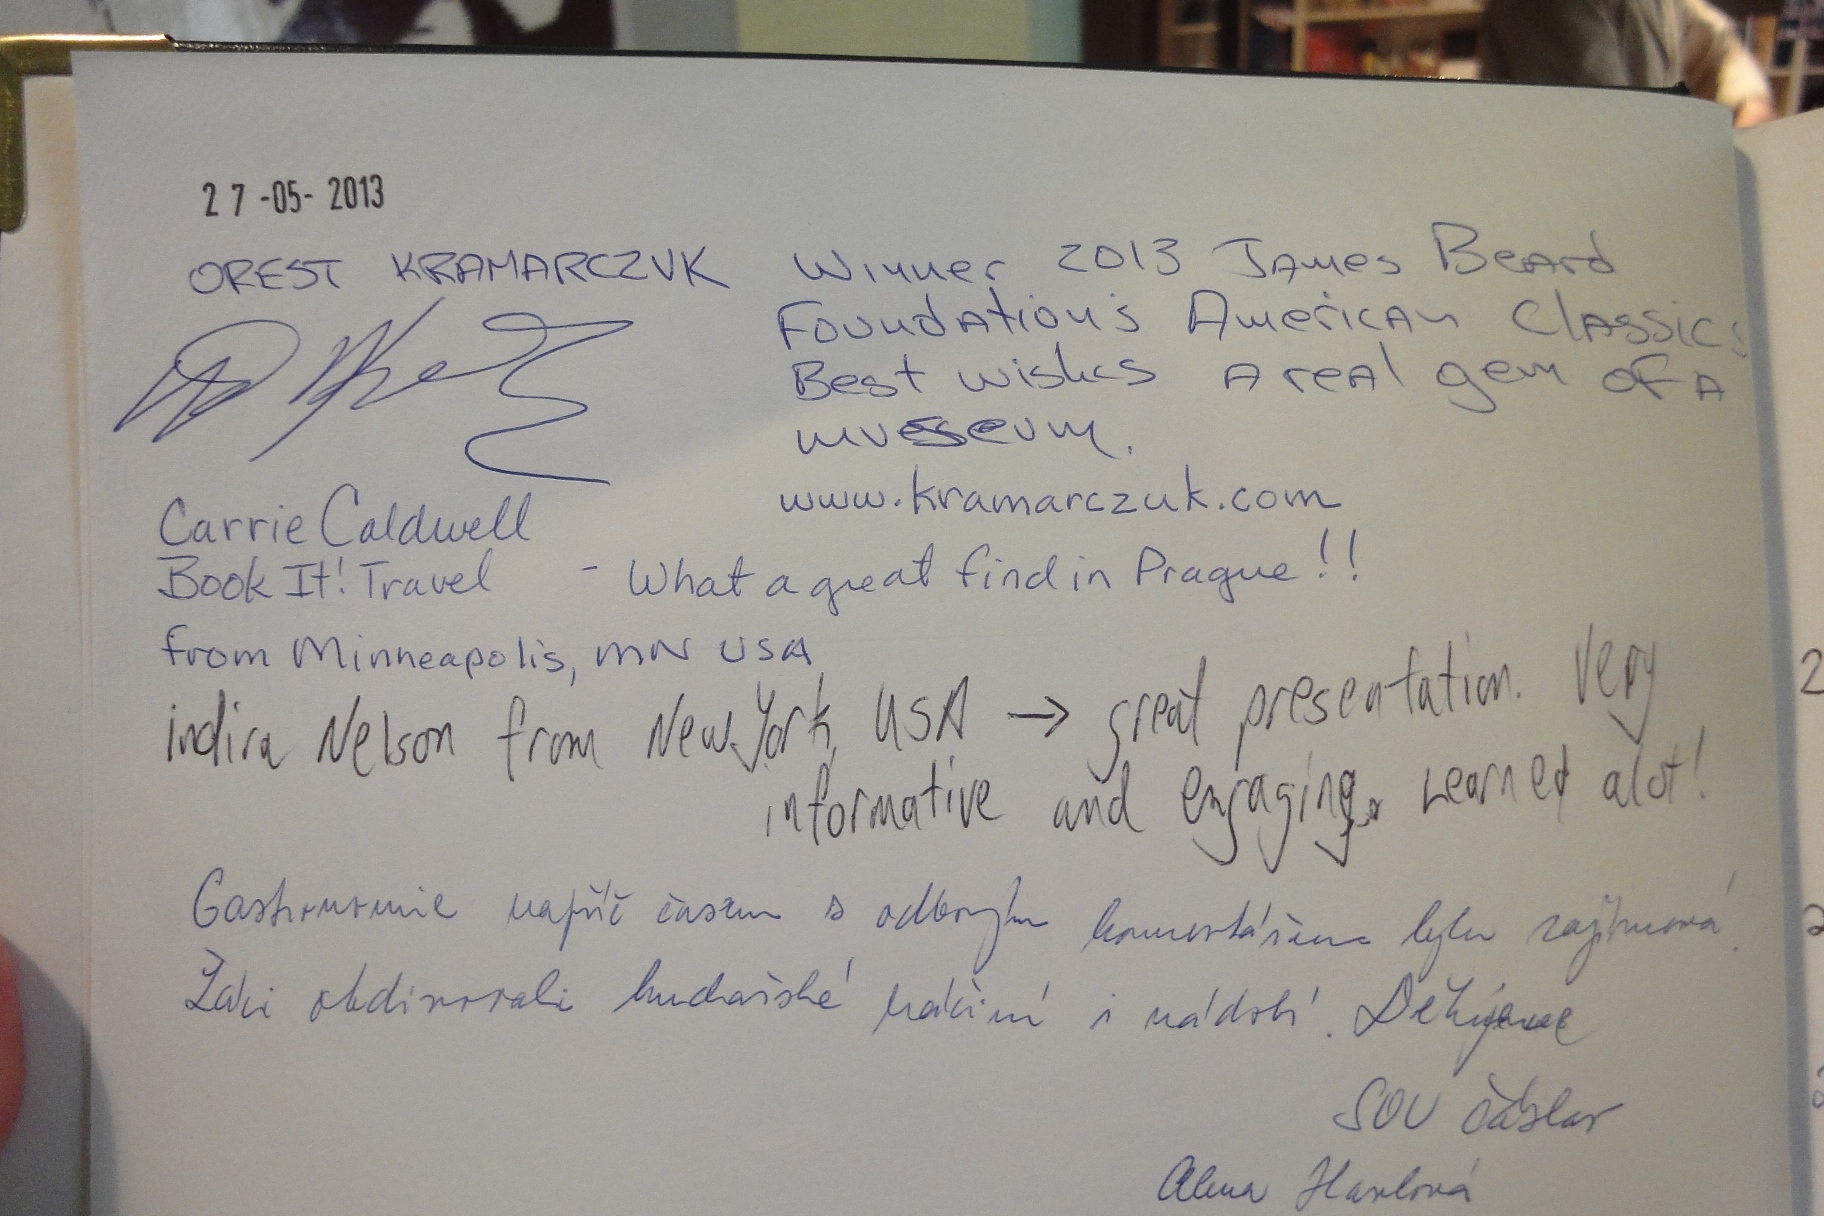 Entry in the Visitors' Book GASTRONOMY MUSEUM